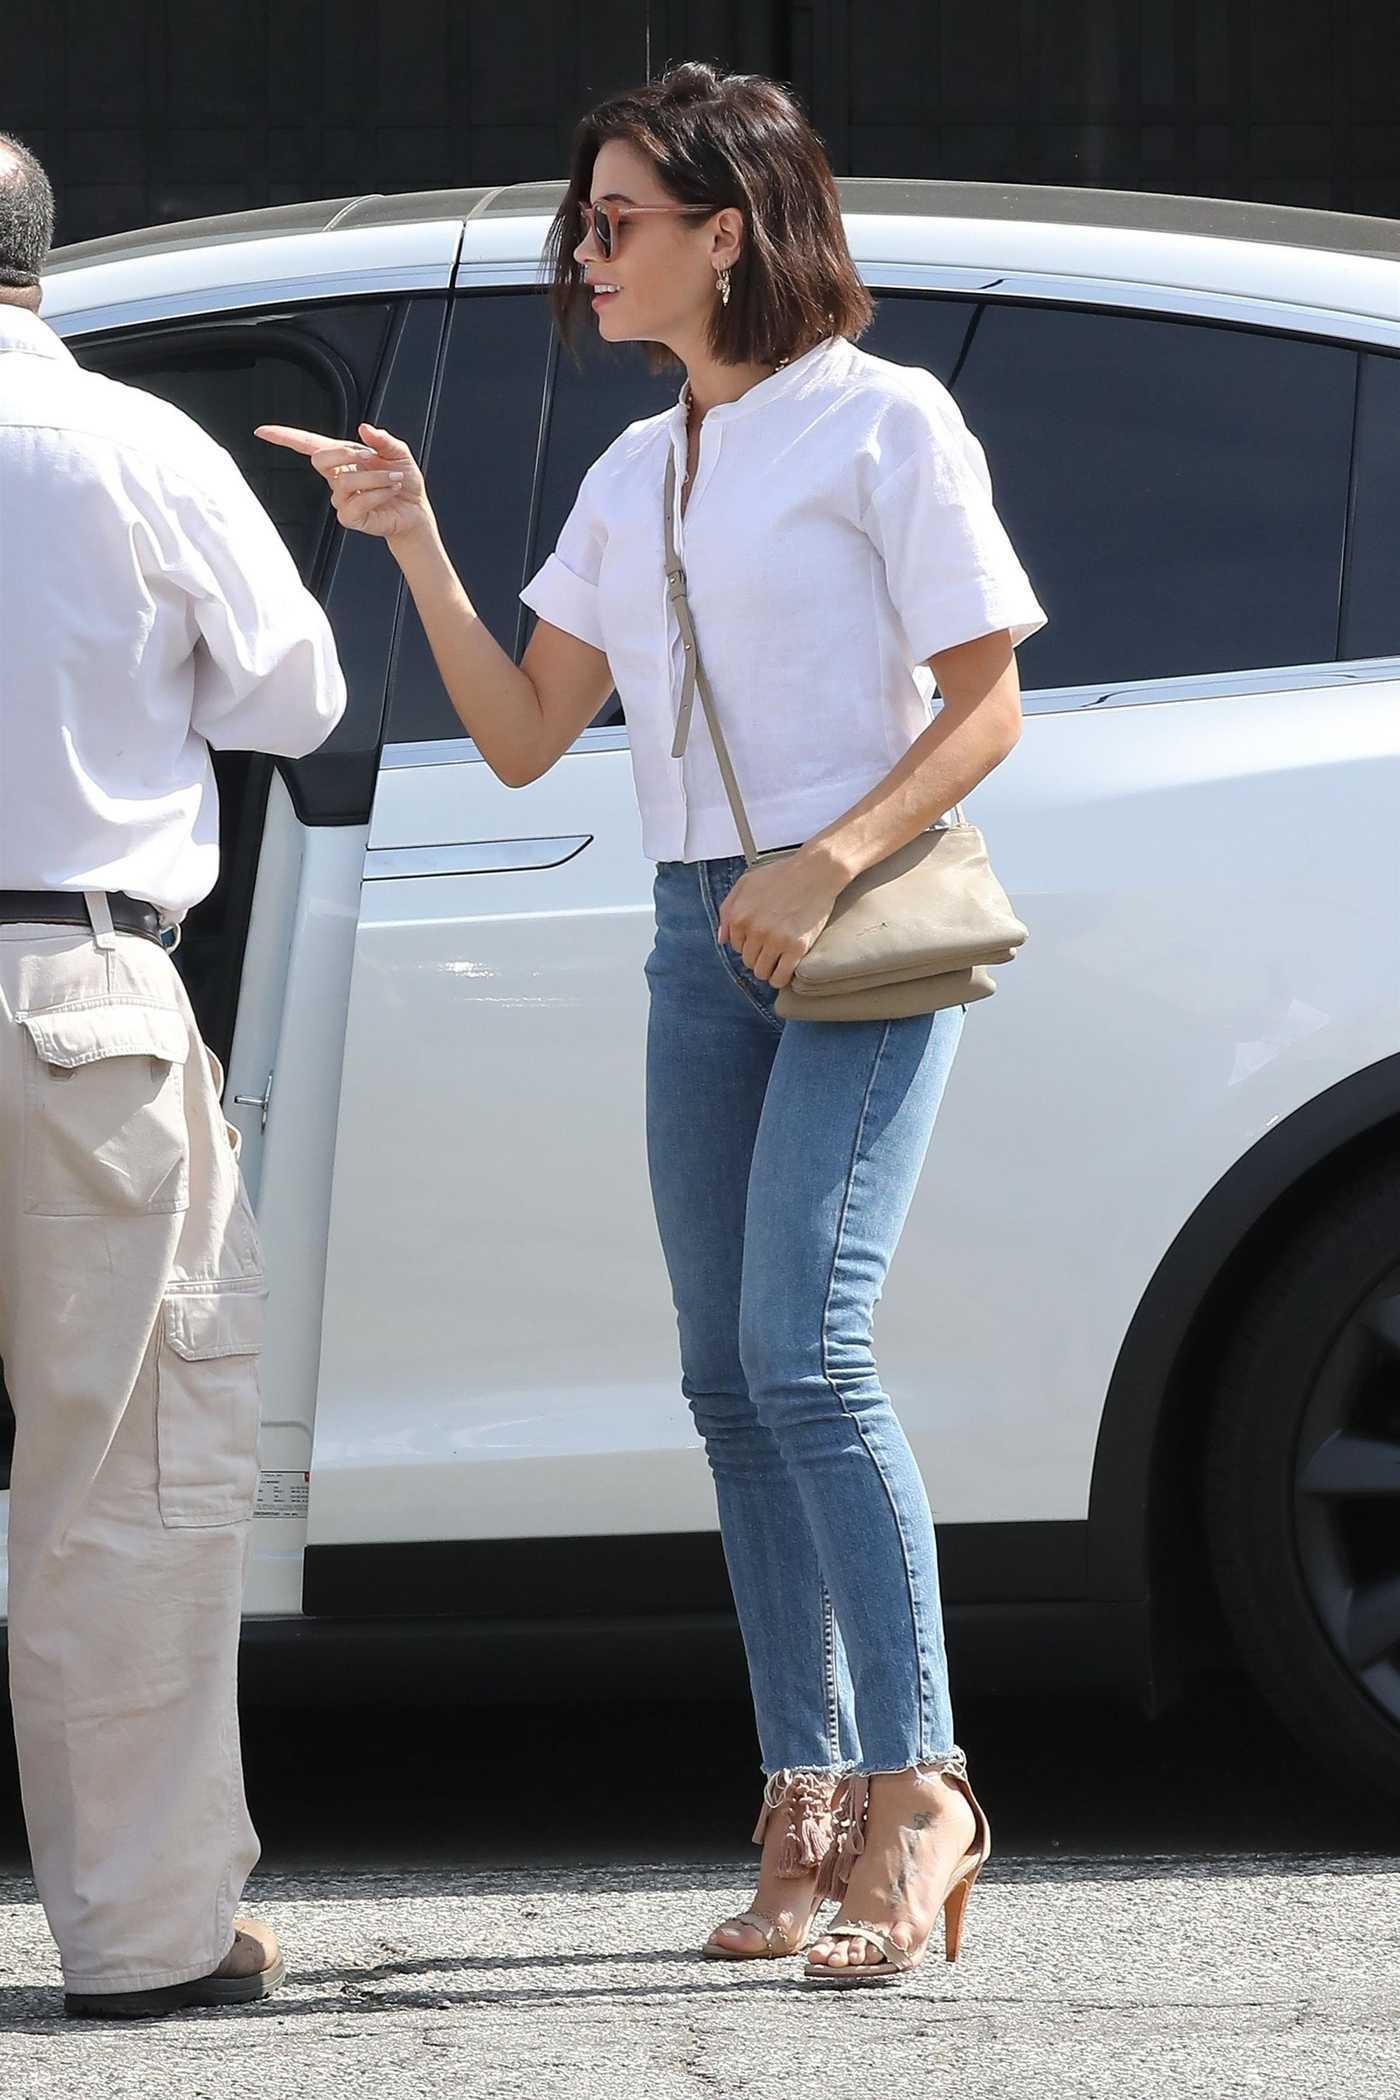 Jenna Dewan in a White Blouse Heads to Her Hair Salon in Los Angeles 08/20/2018